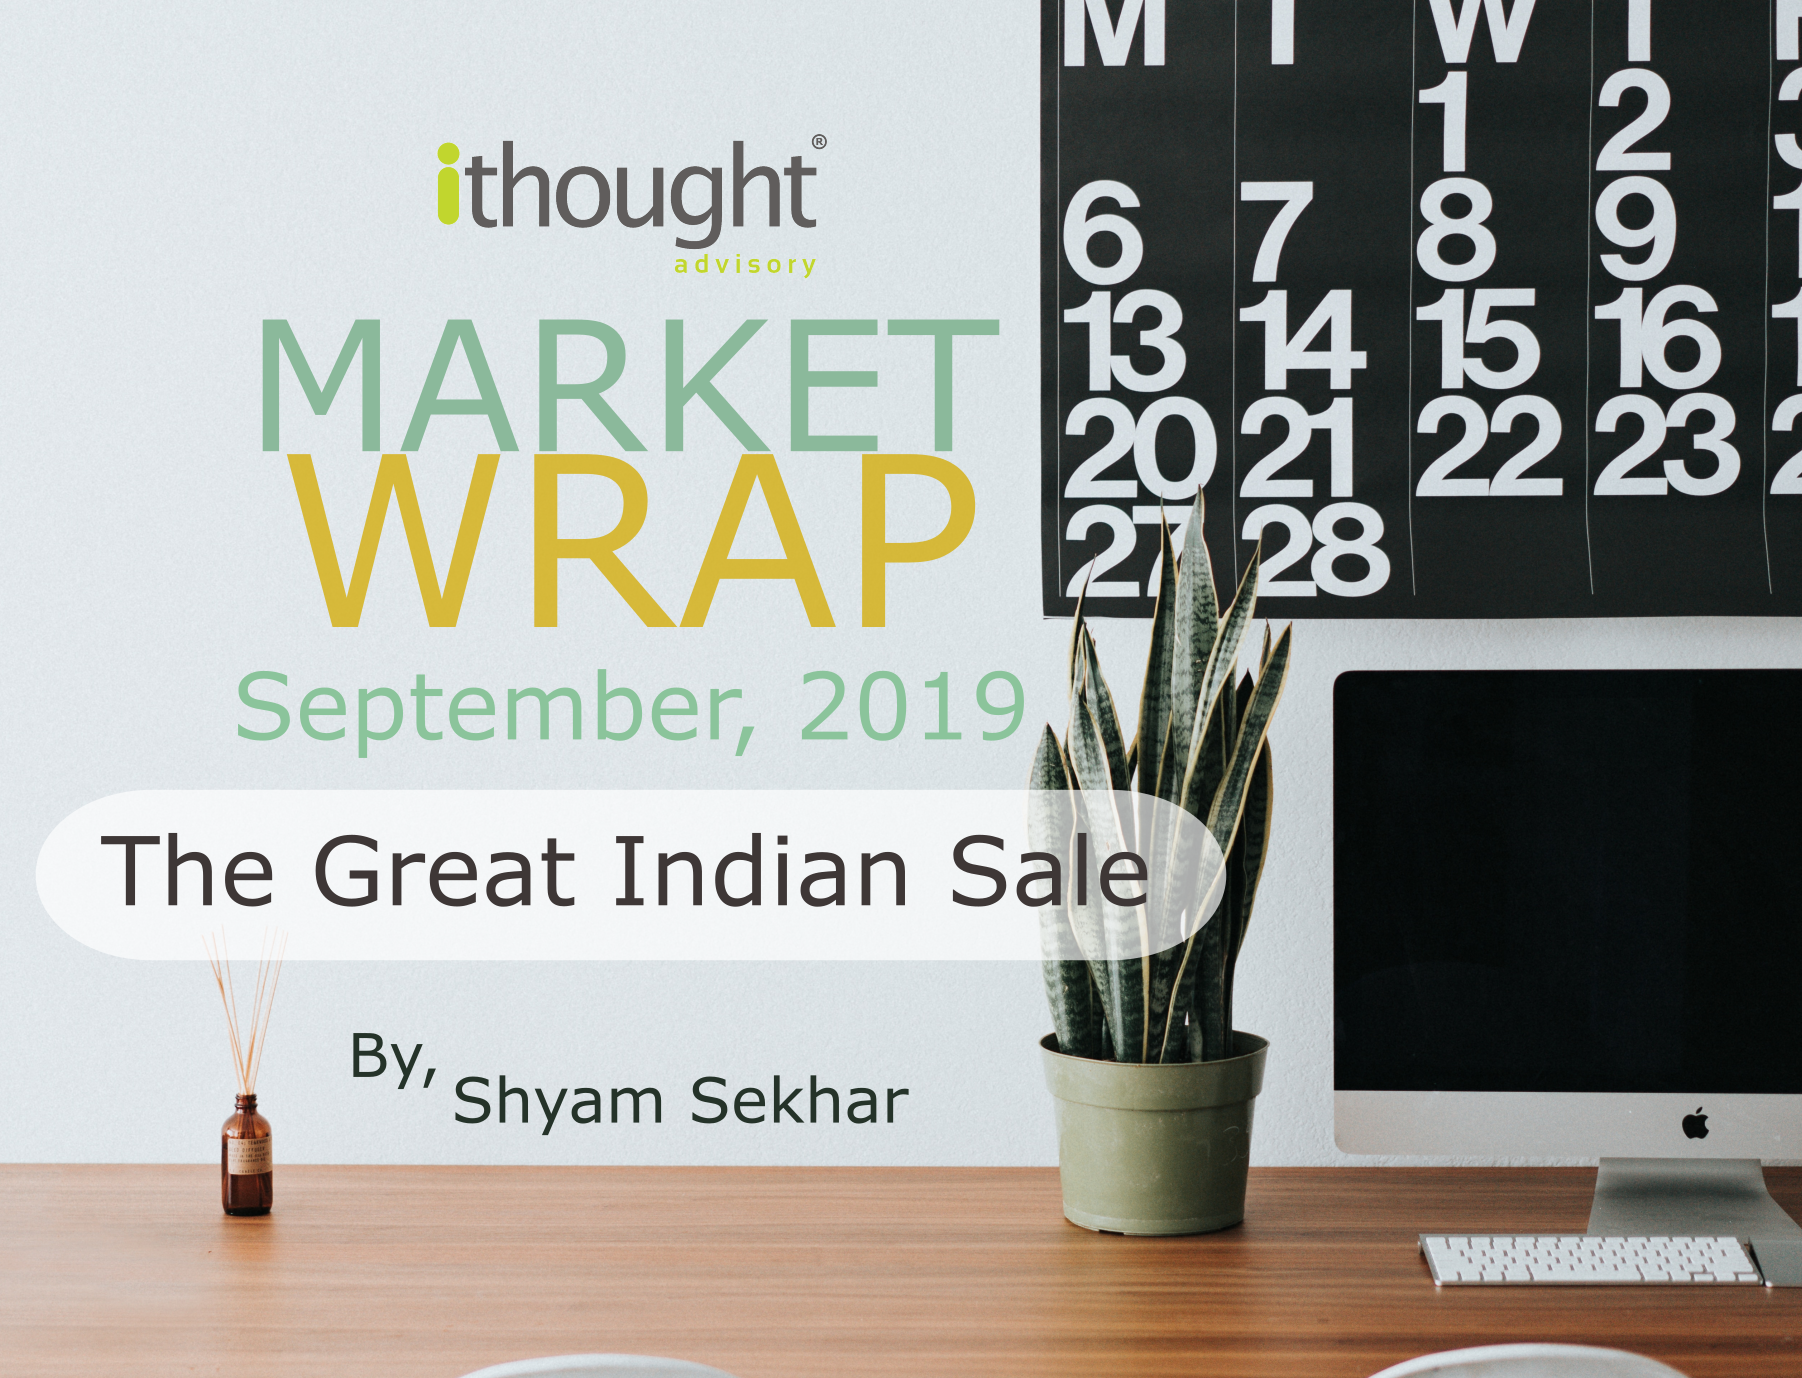 the-great-indian-sale-ithought